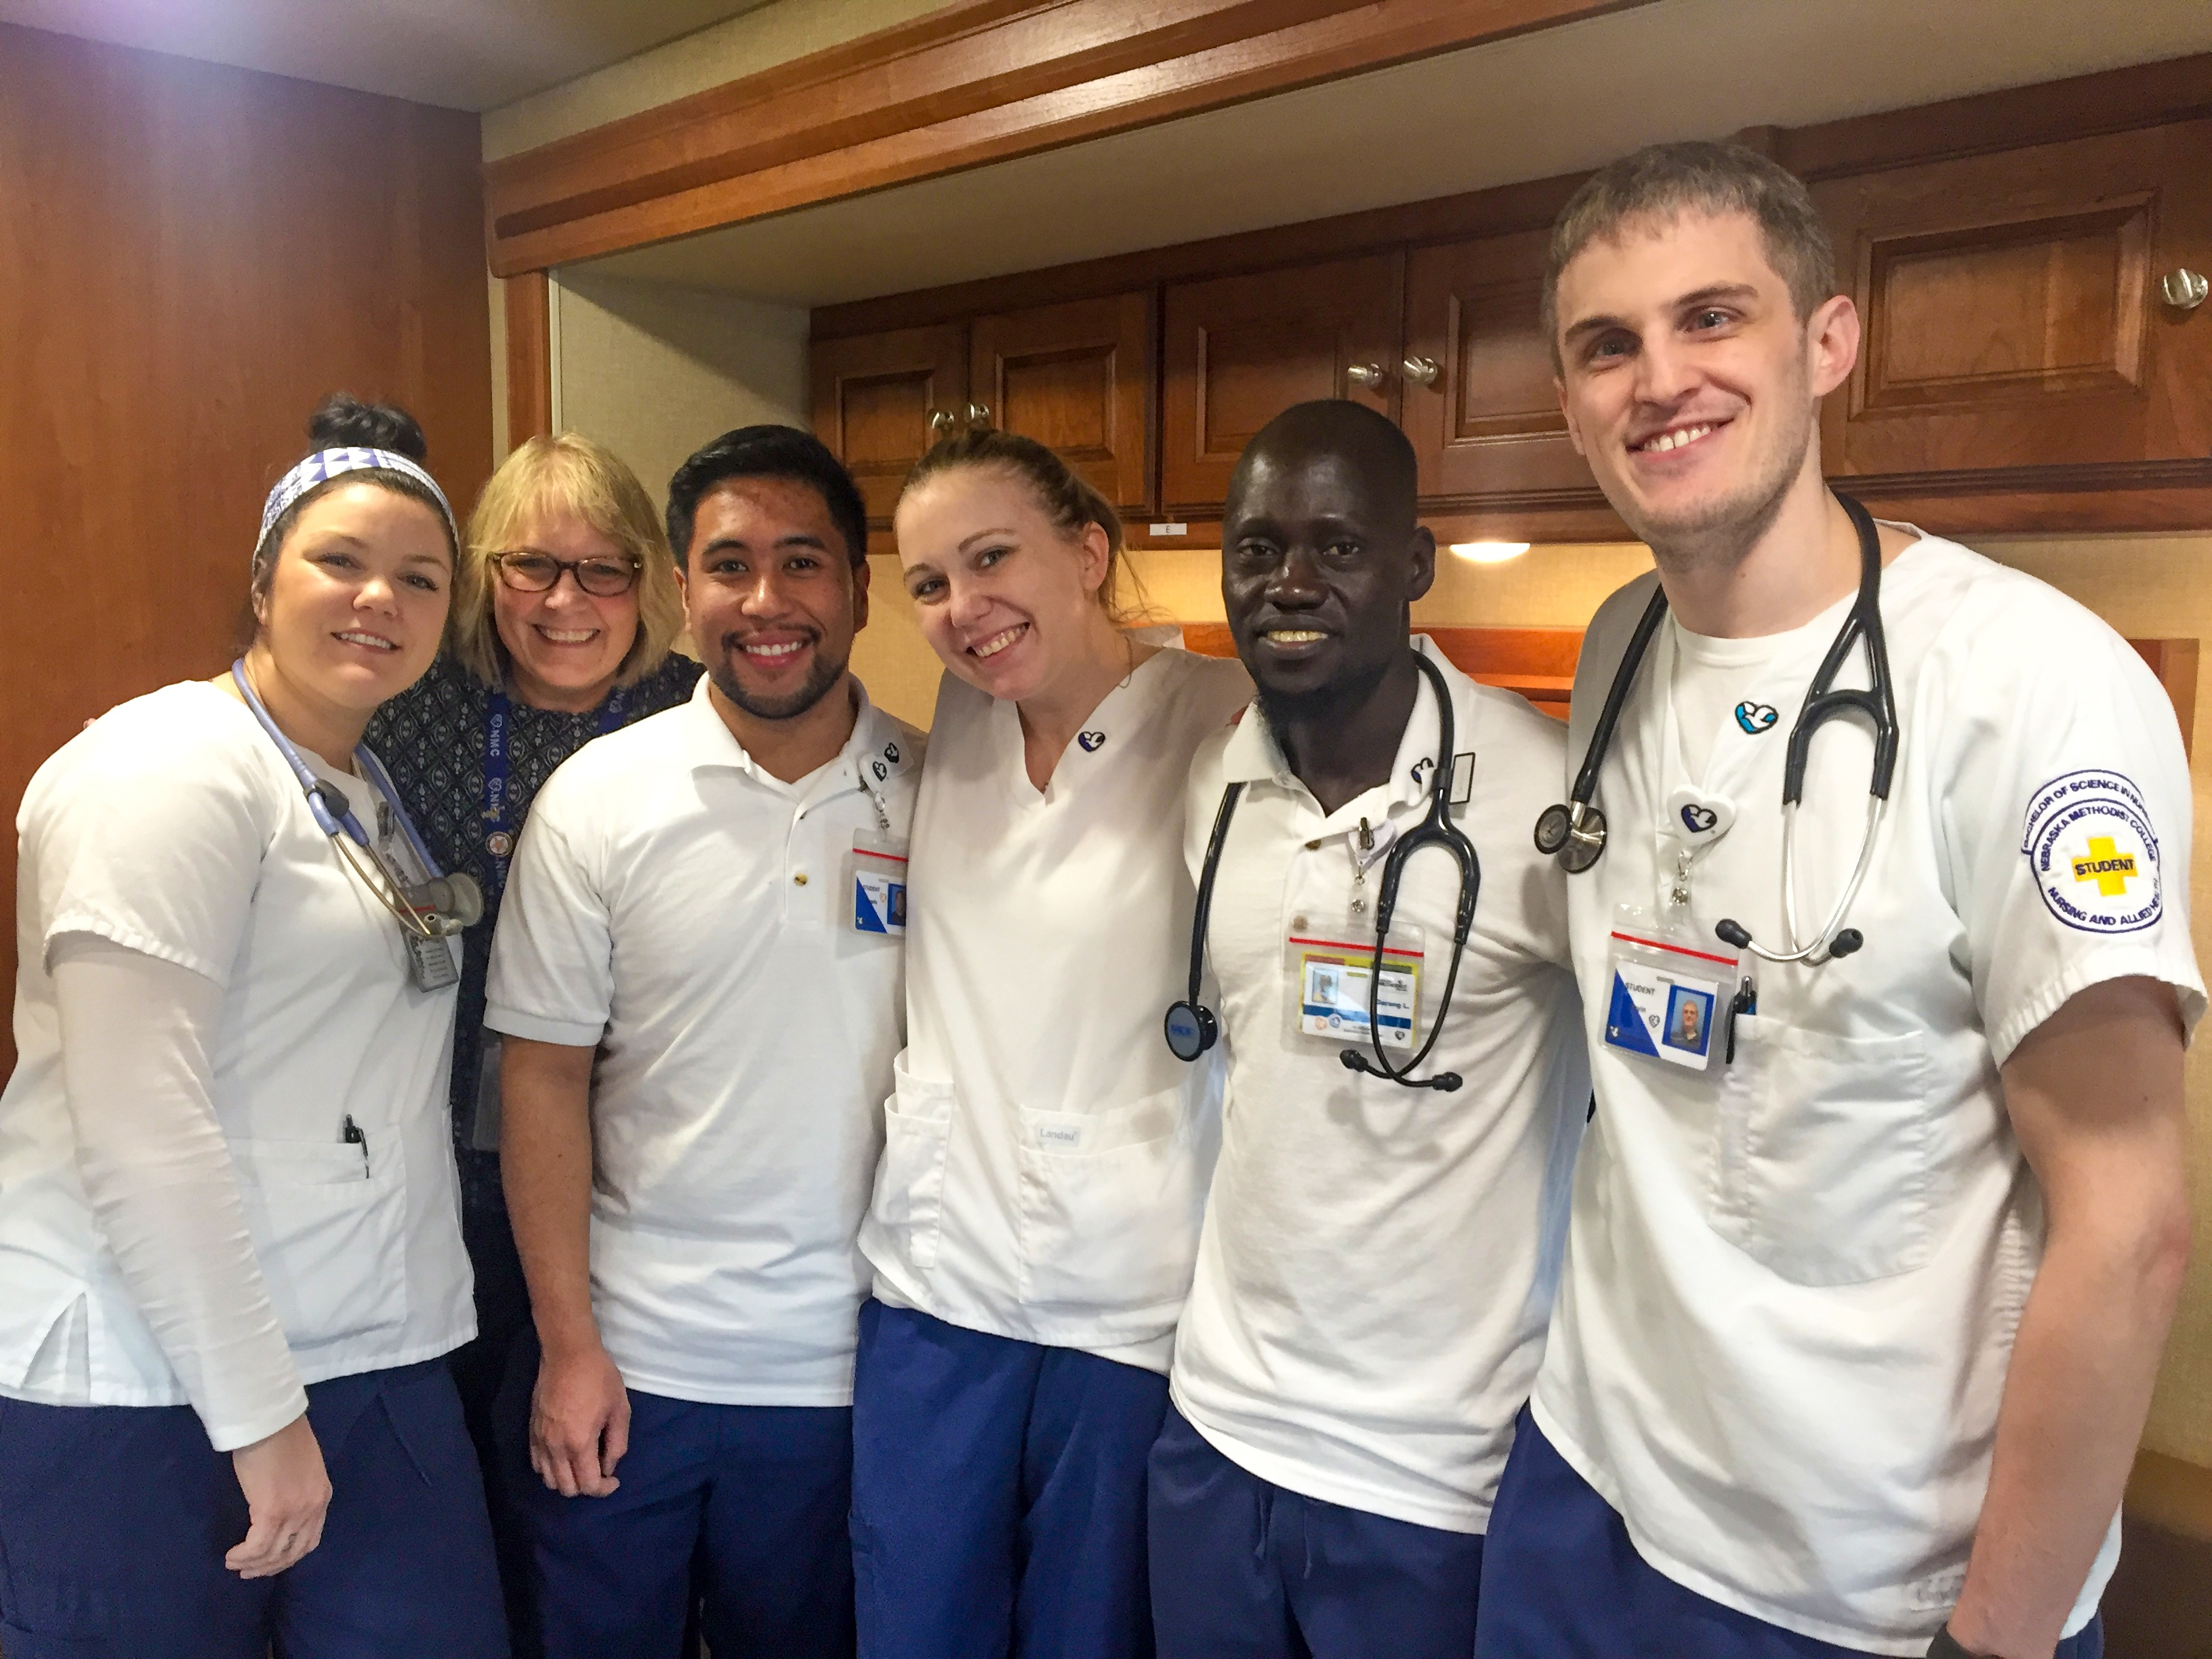 Pictured (from left) are Alyssa Houston, Kim Hall, Angelo Andal, Ashley Olson, Garang Lual and Kevin Kirshenbaum.